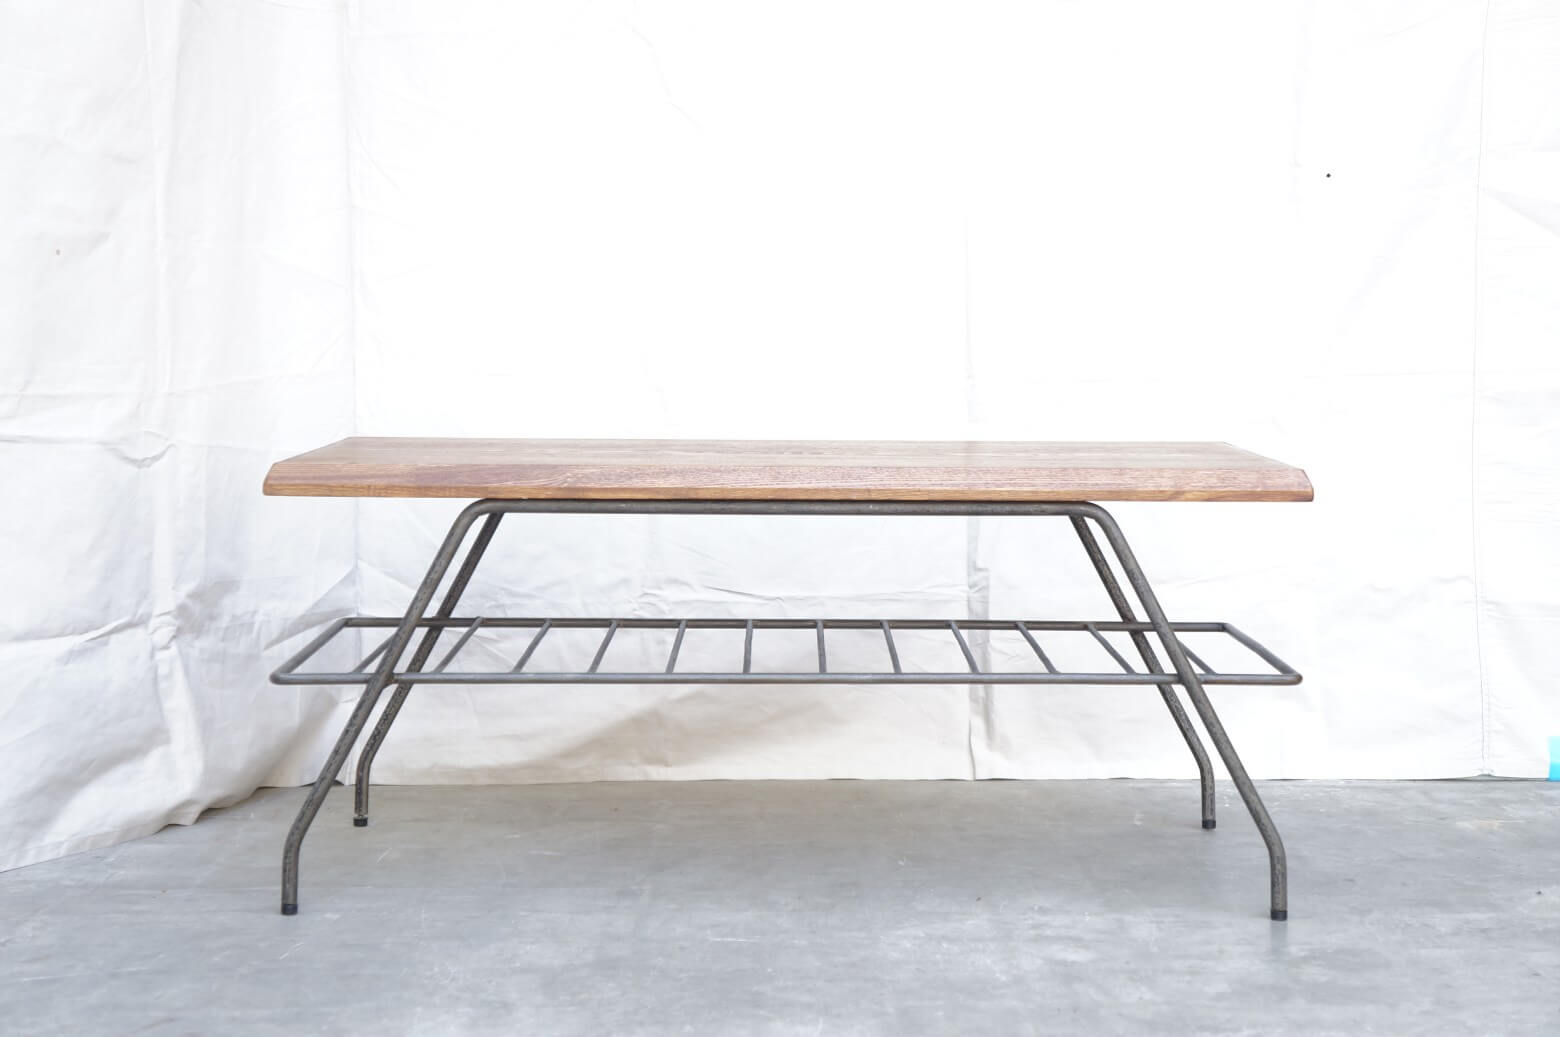 ACME Furniture BELLS FACTORY COFFEE TABLE SMALL 90cm / アクメ ファニチャー ベルズ ファクトリー コーヒーテーブル